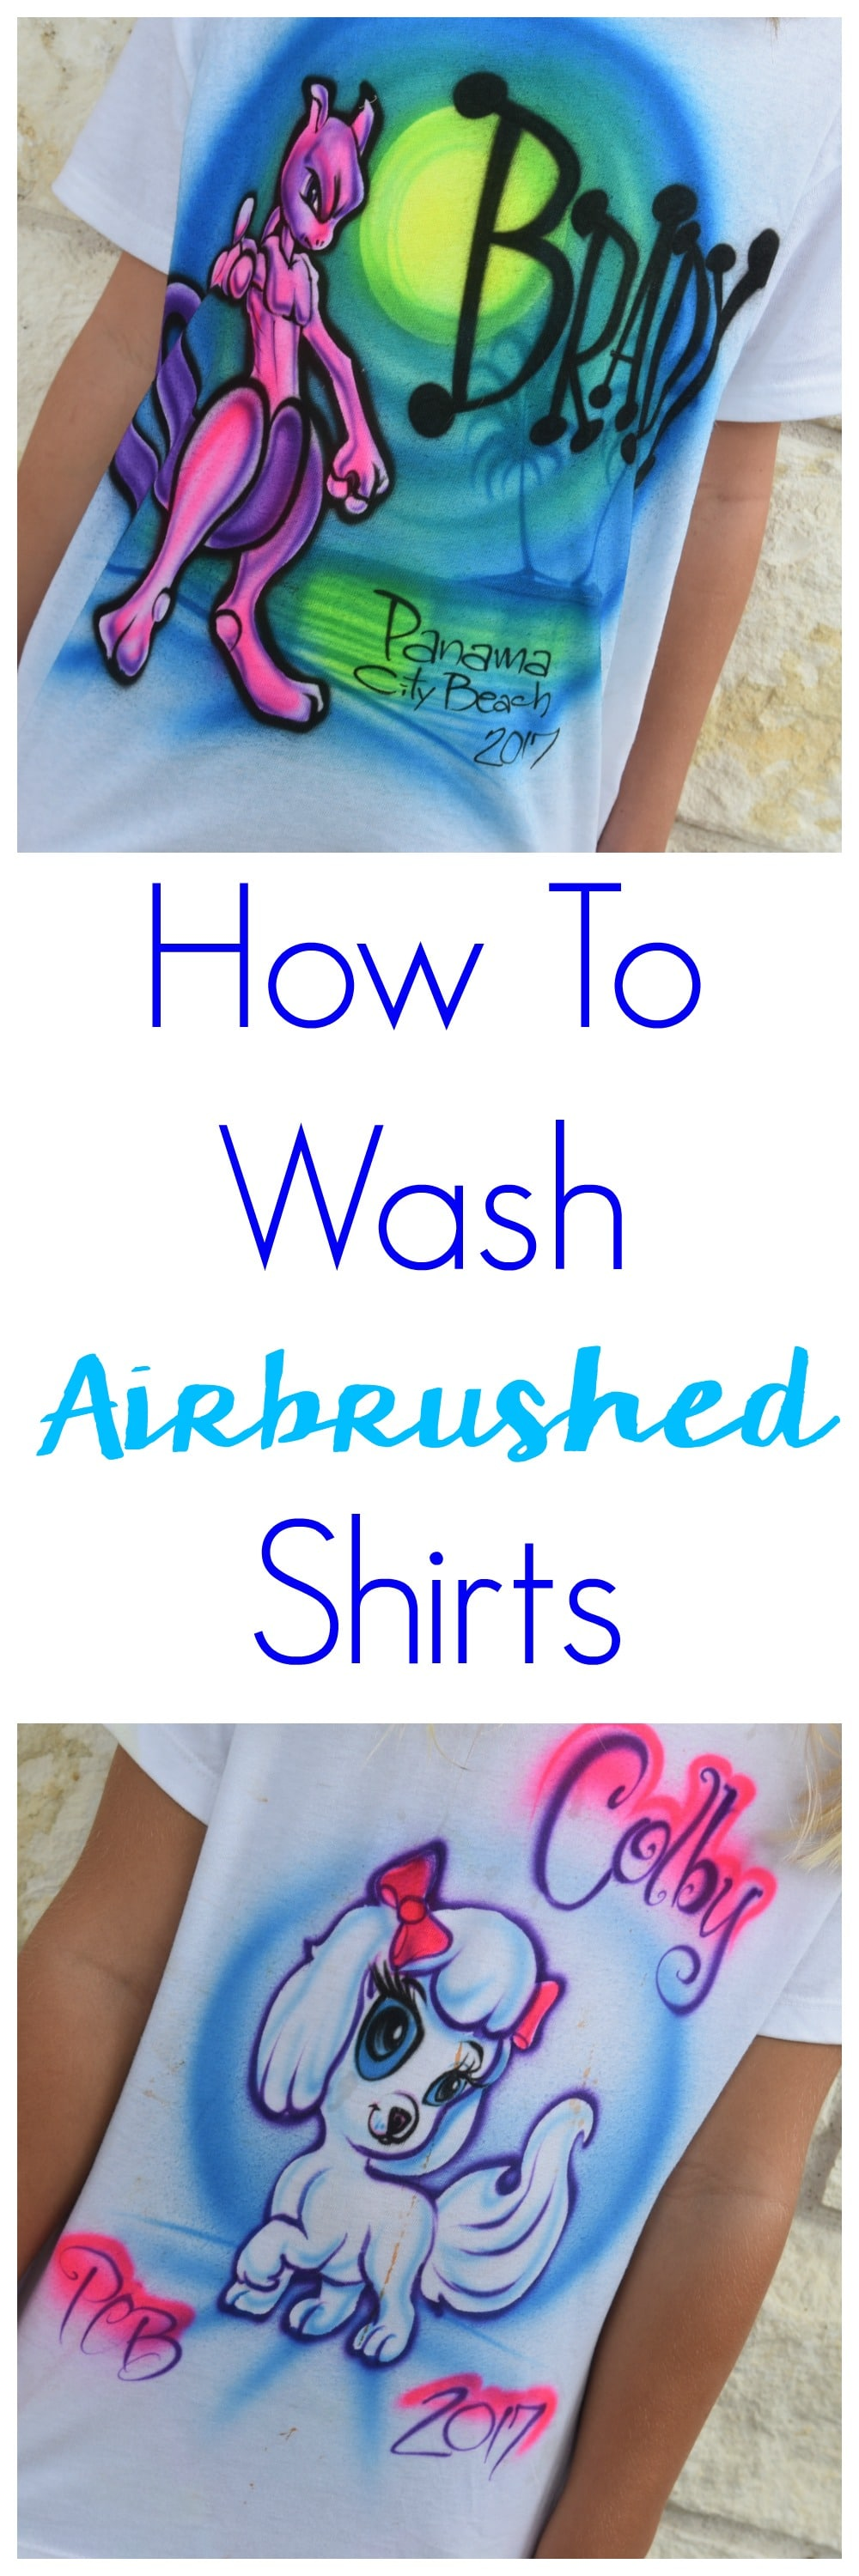 Don't risk ruining the souvenirs you bought to remember your summer vacation. Instead learn how to wash airbrushed shirts and let the memories live on!